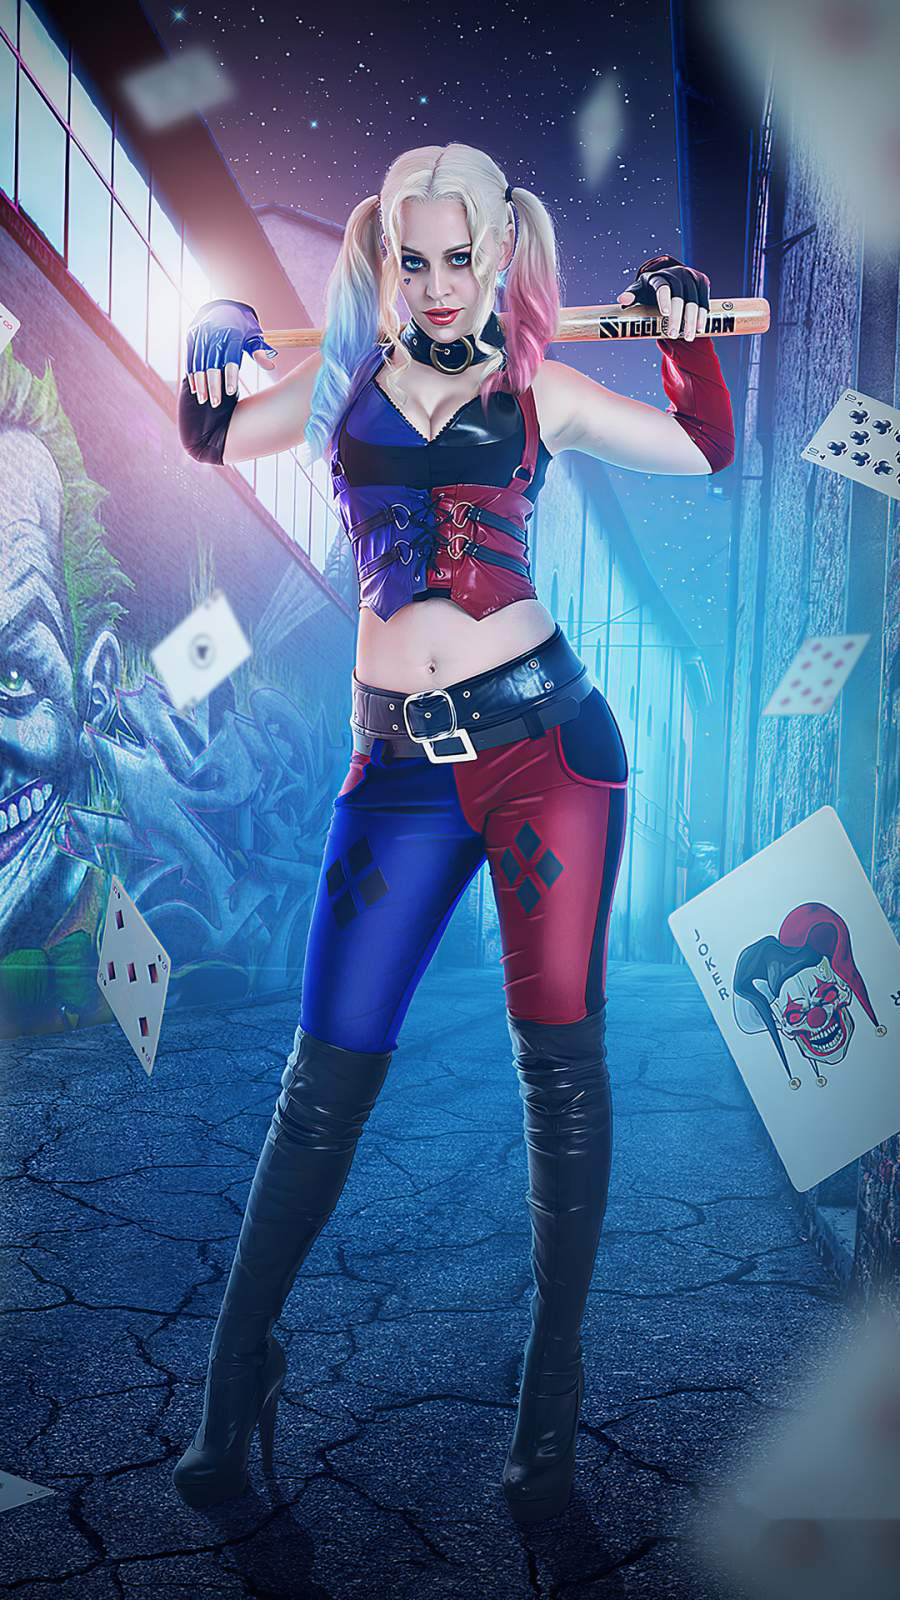 Harley Quinn Cosplay 4k Iphone Wallpaper Iphone Wallpapers Iphone Wallpapers